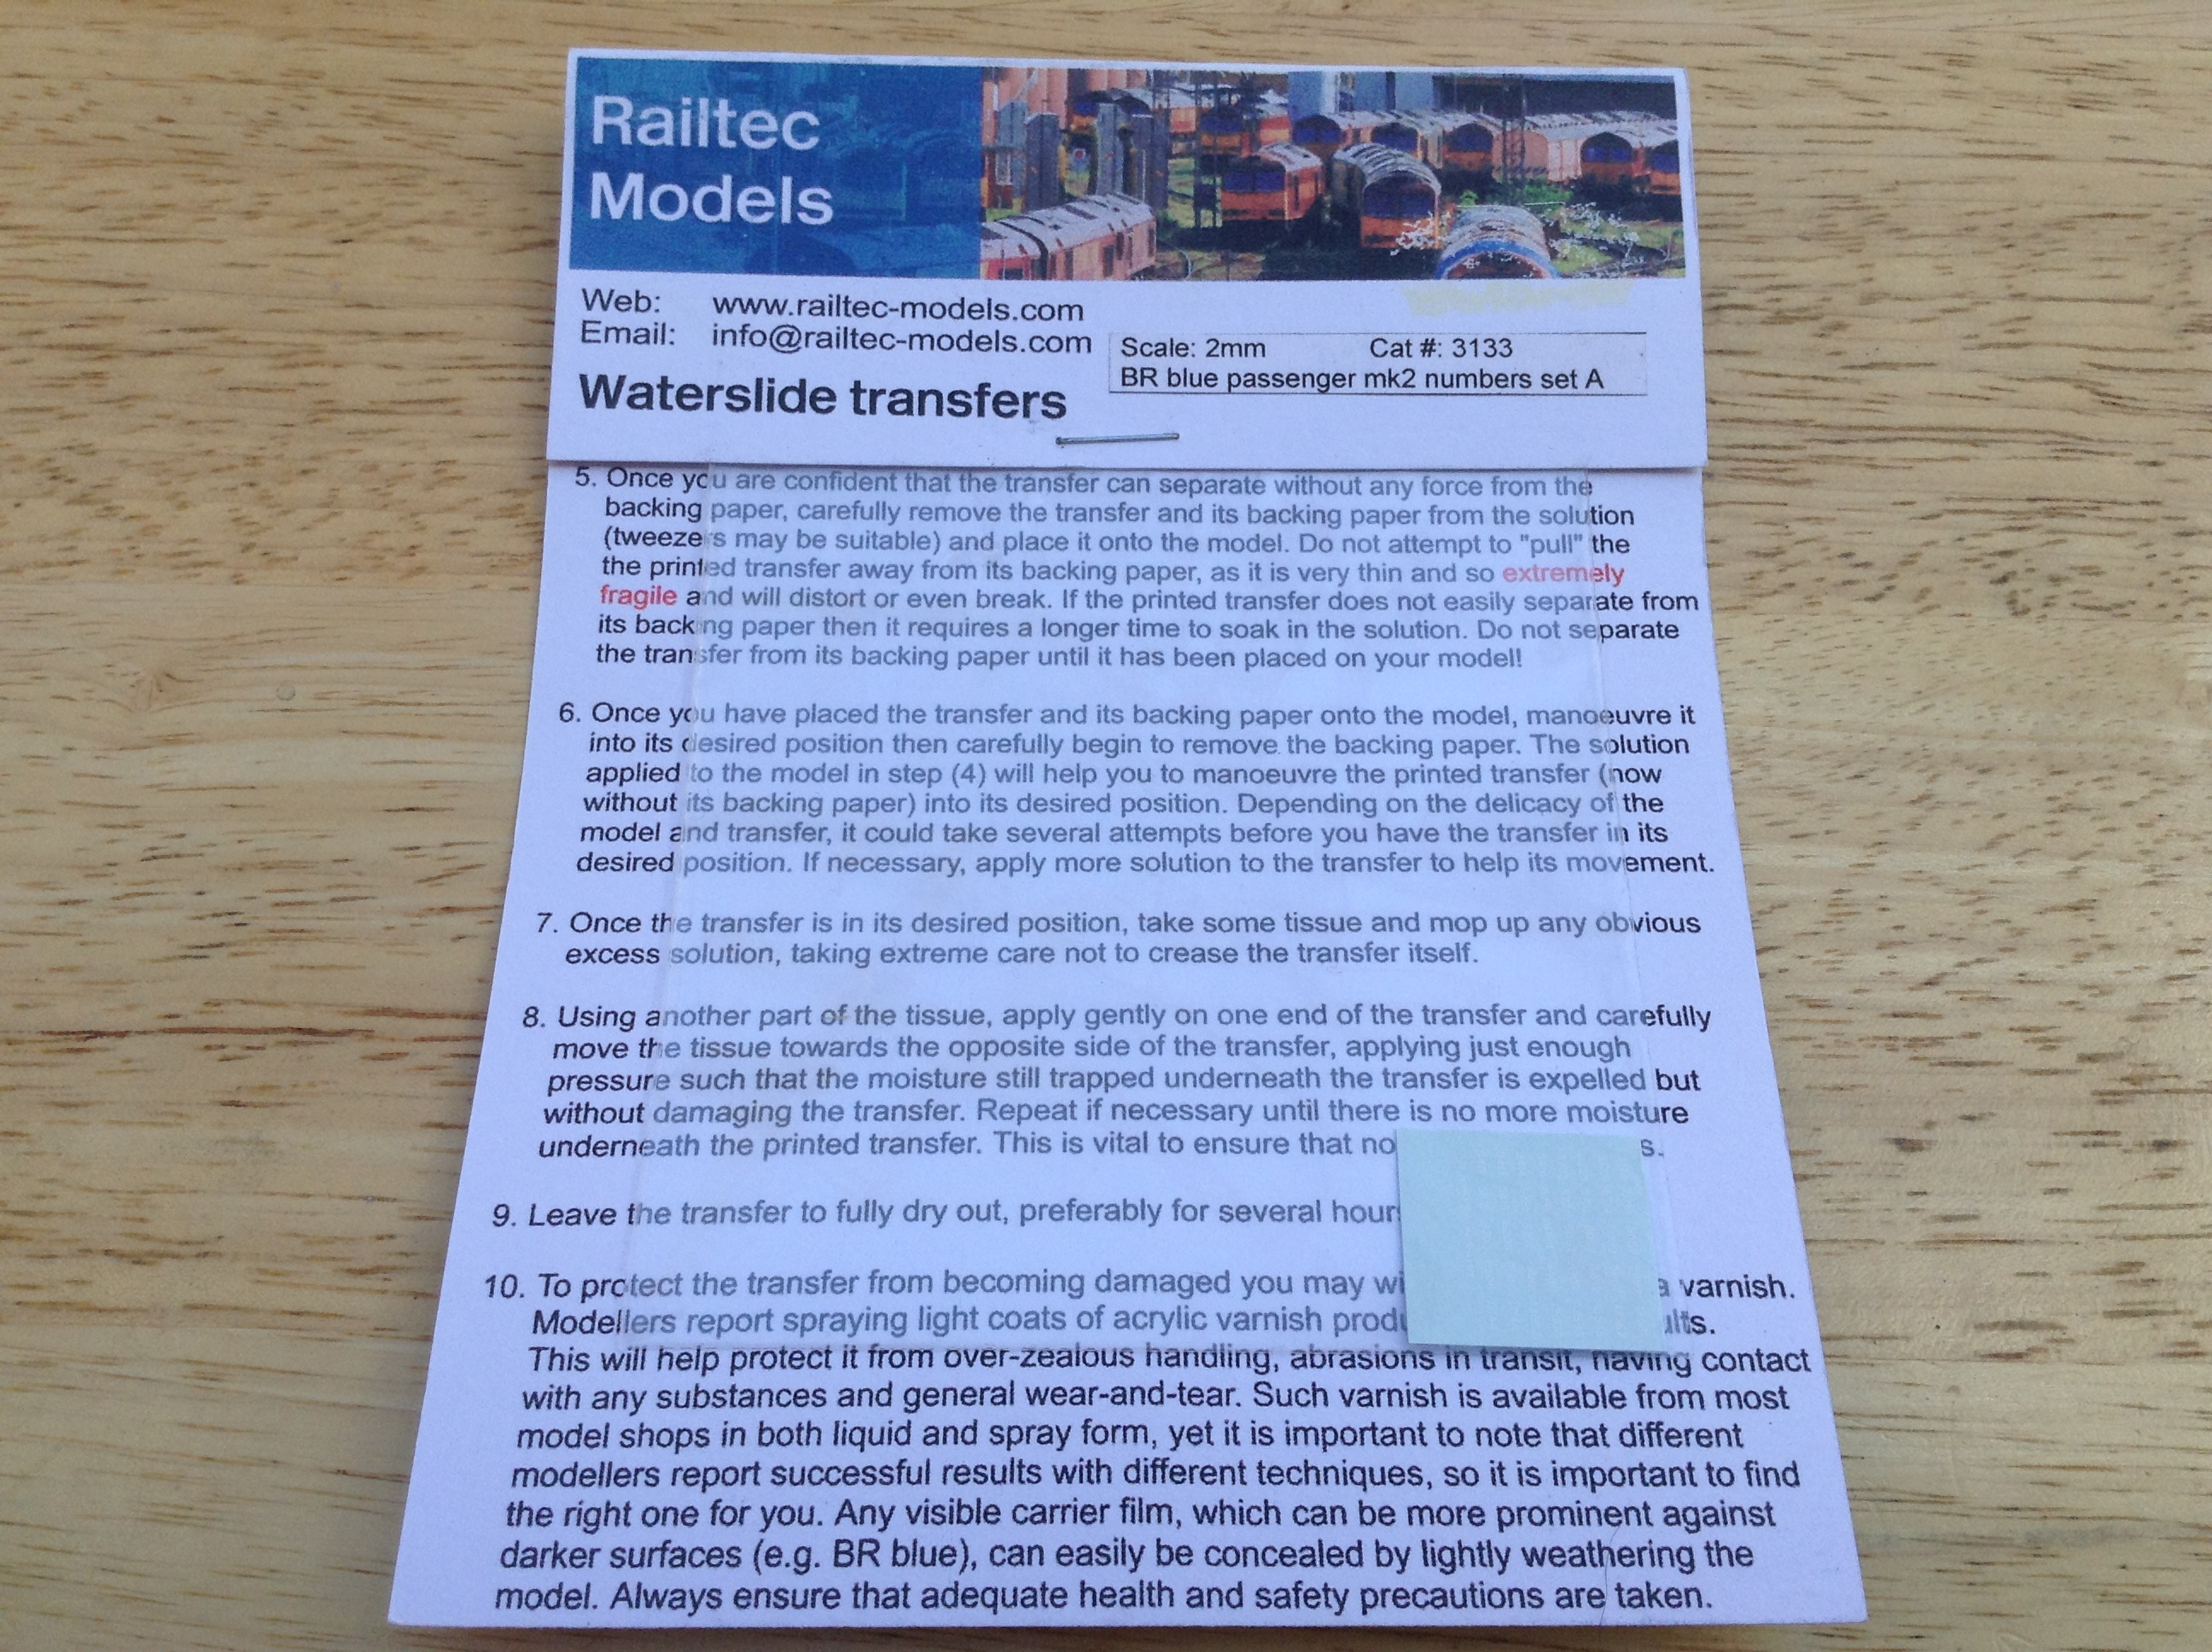 Railtec 3133 BR Blue passenger Mk2 numbers set A